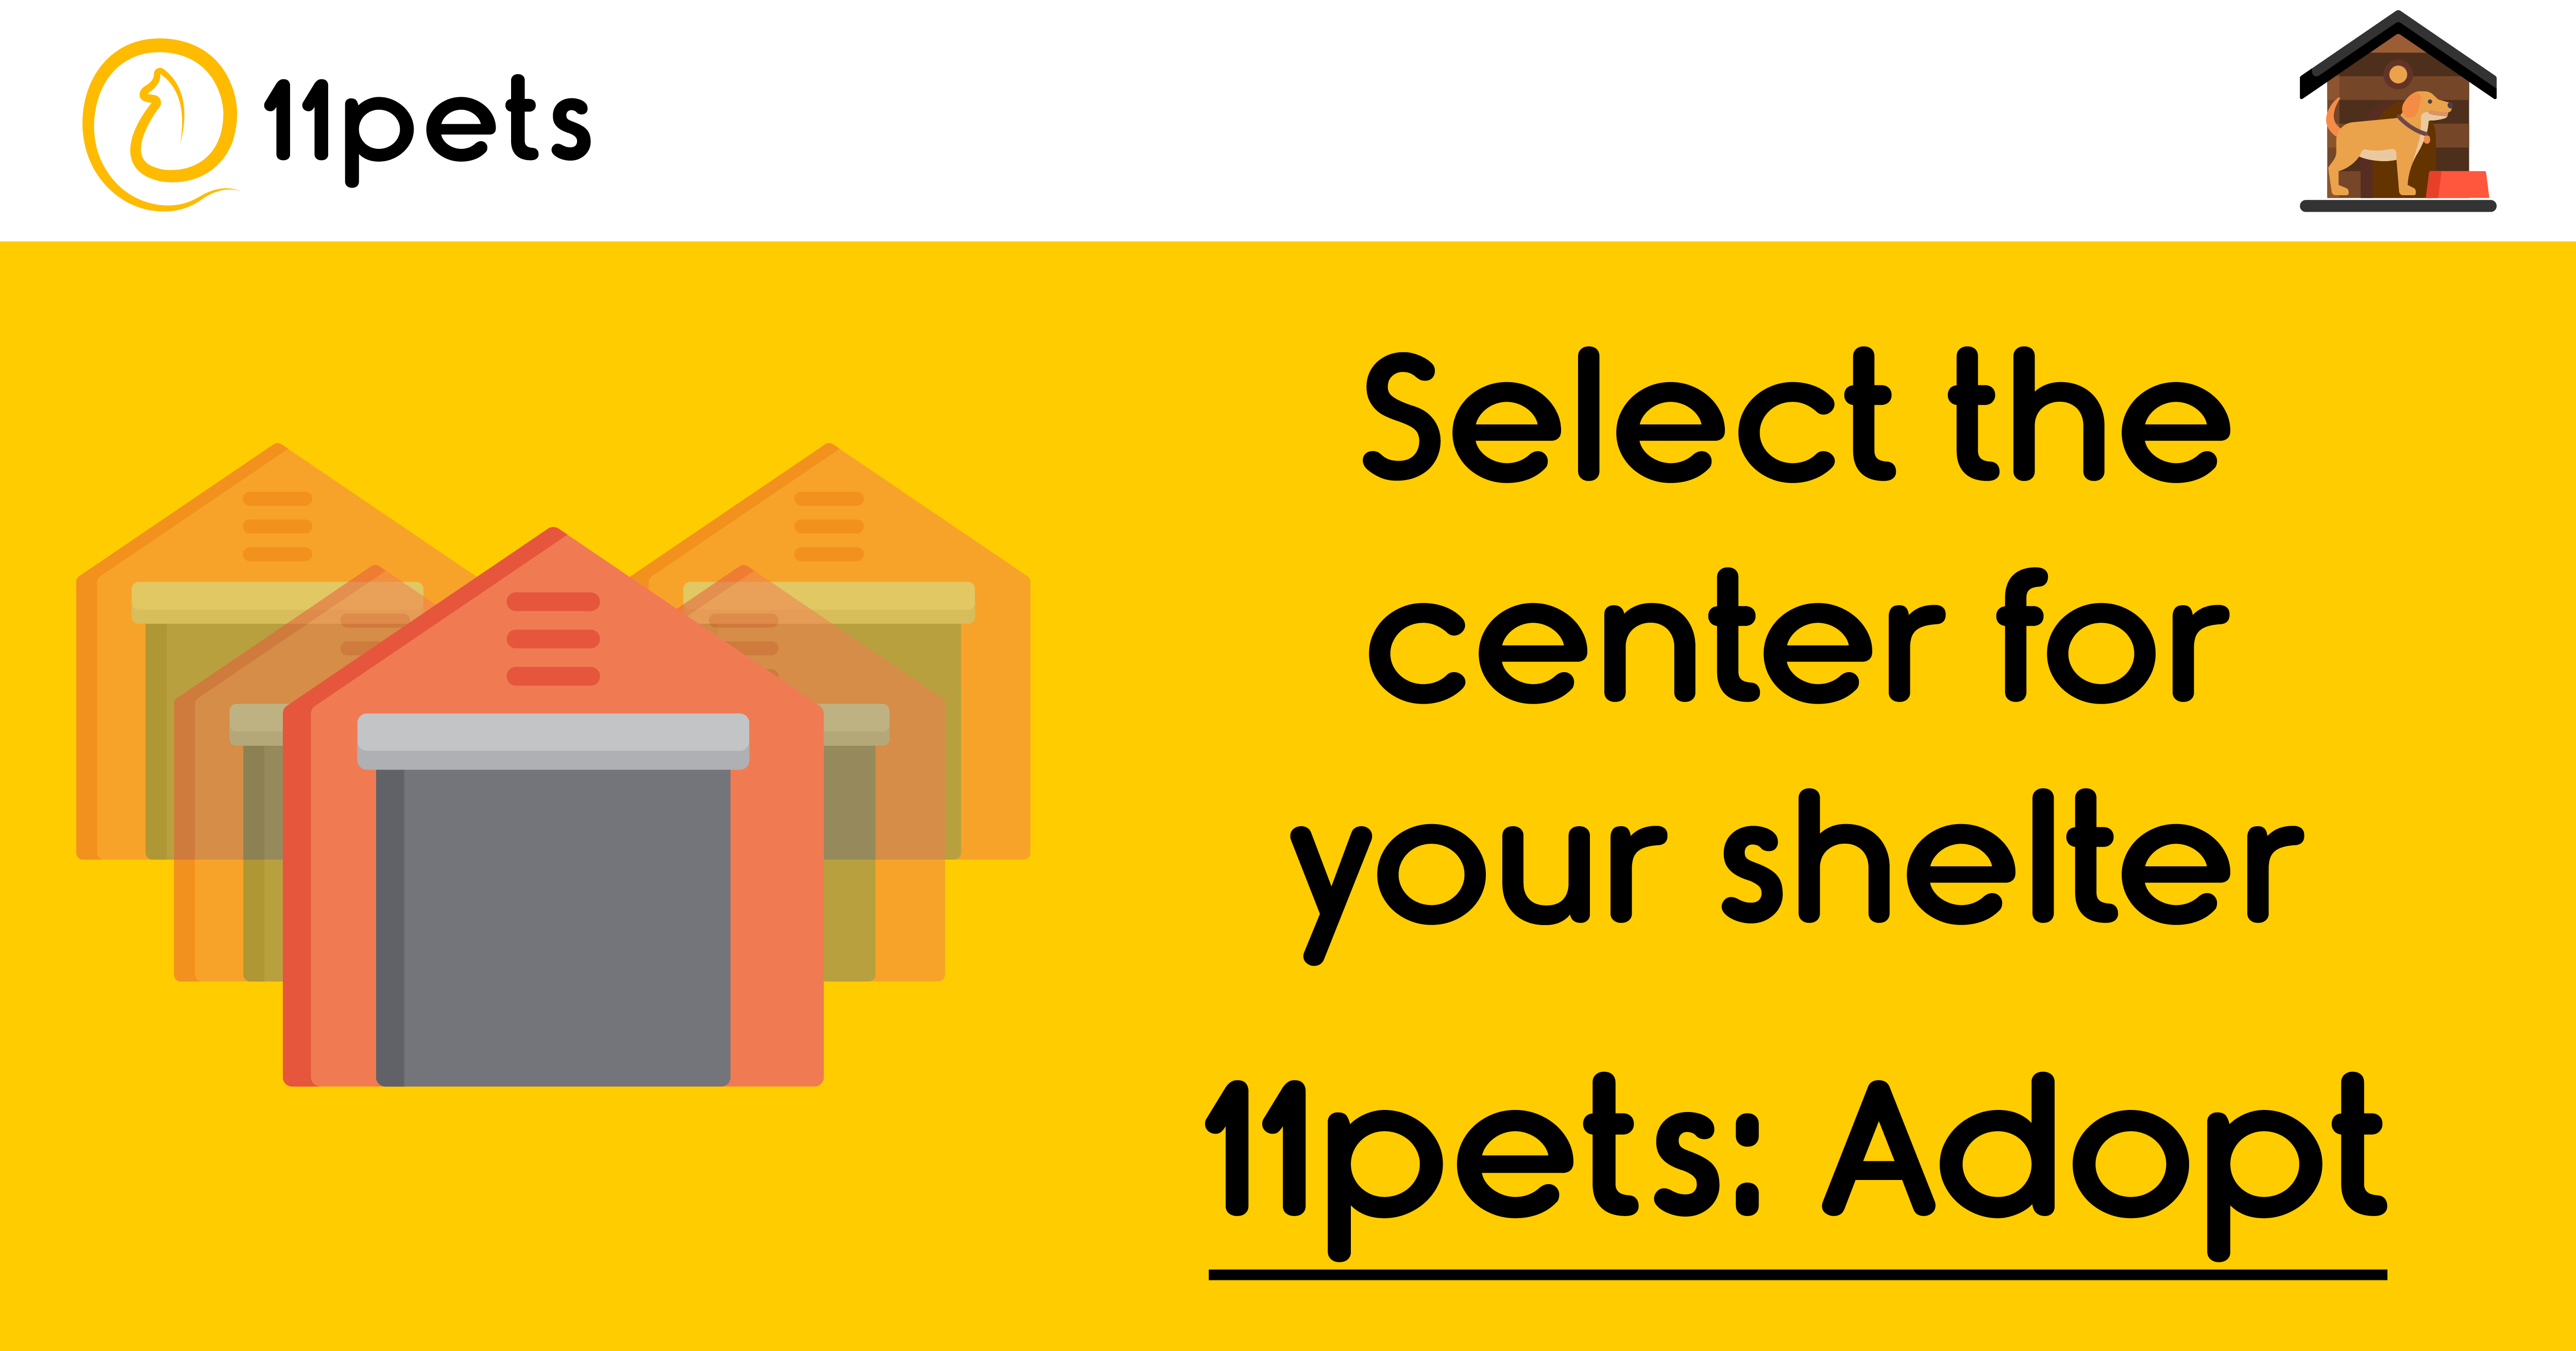 11pets: Adopt - How to select one of the centers of your shelter